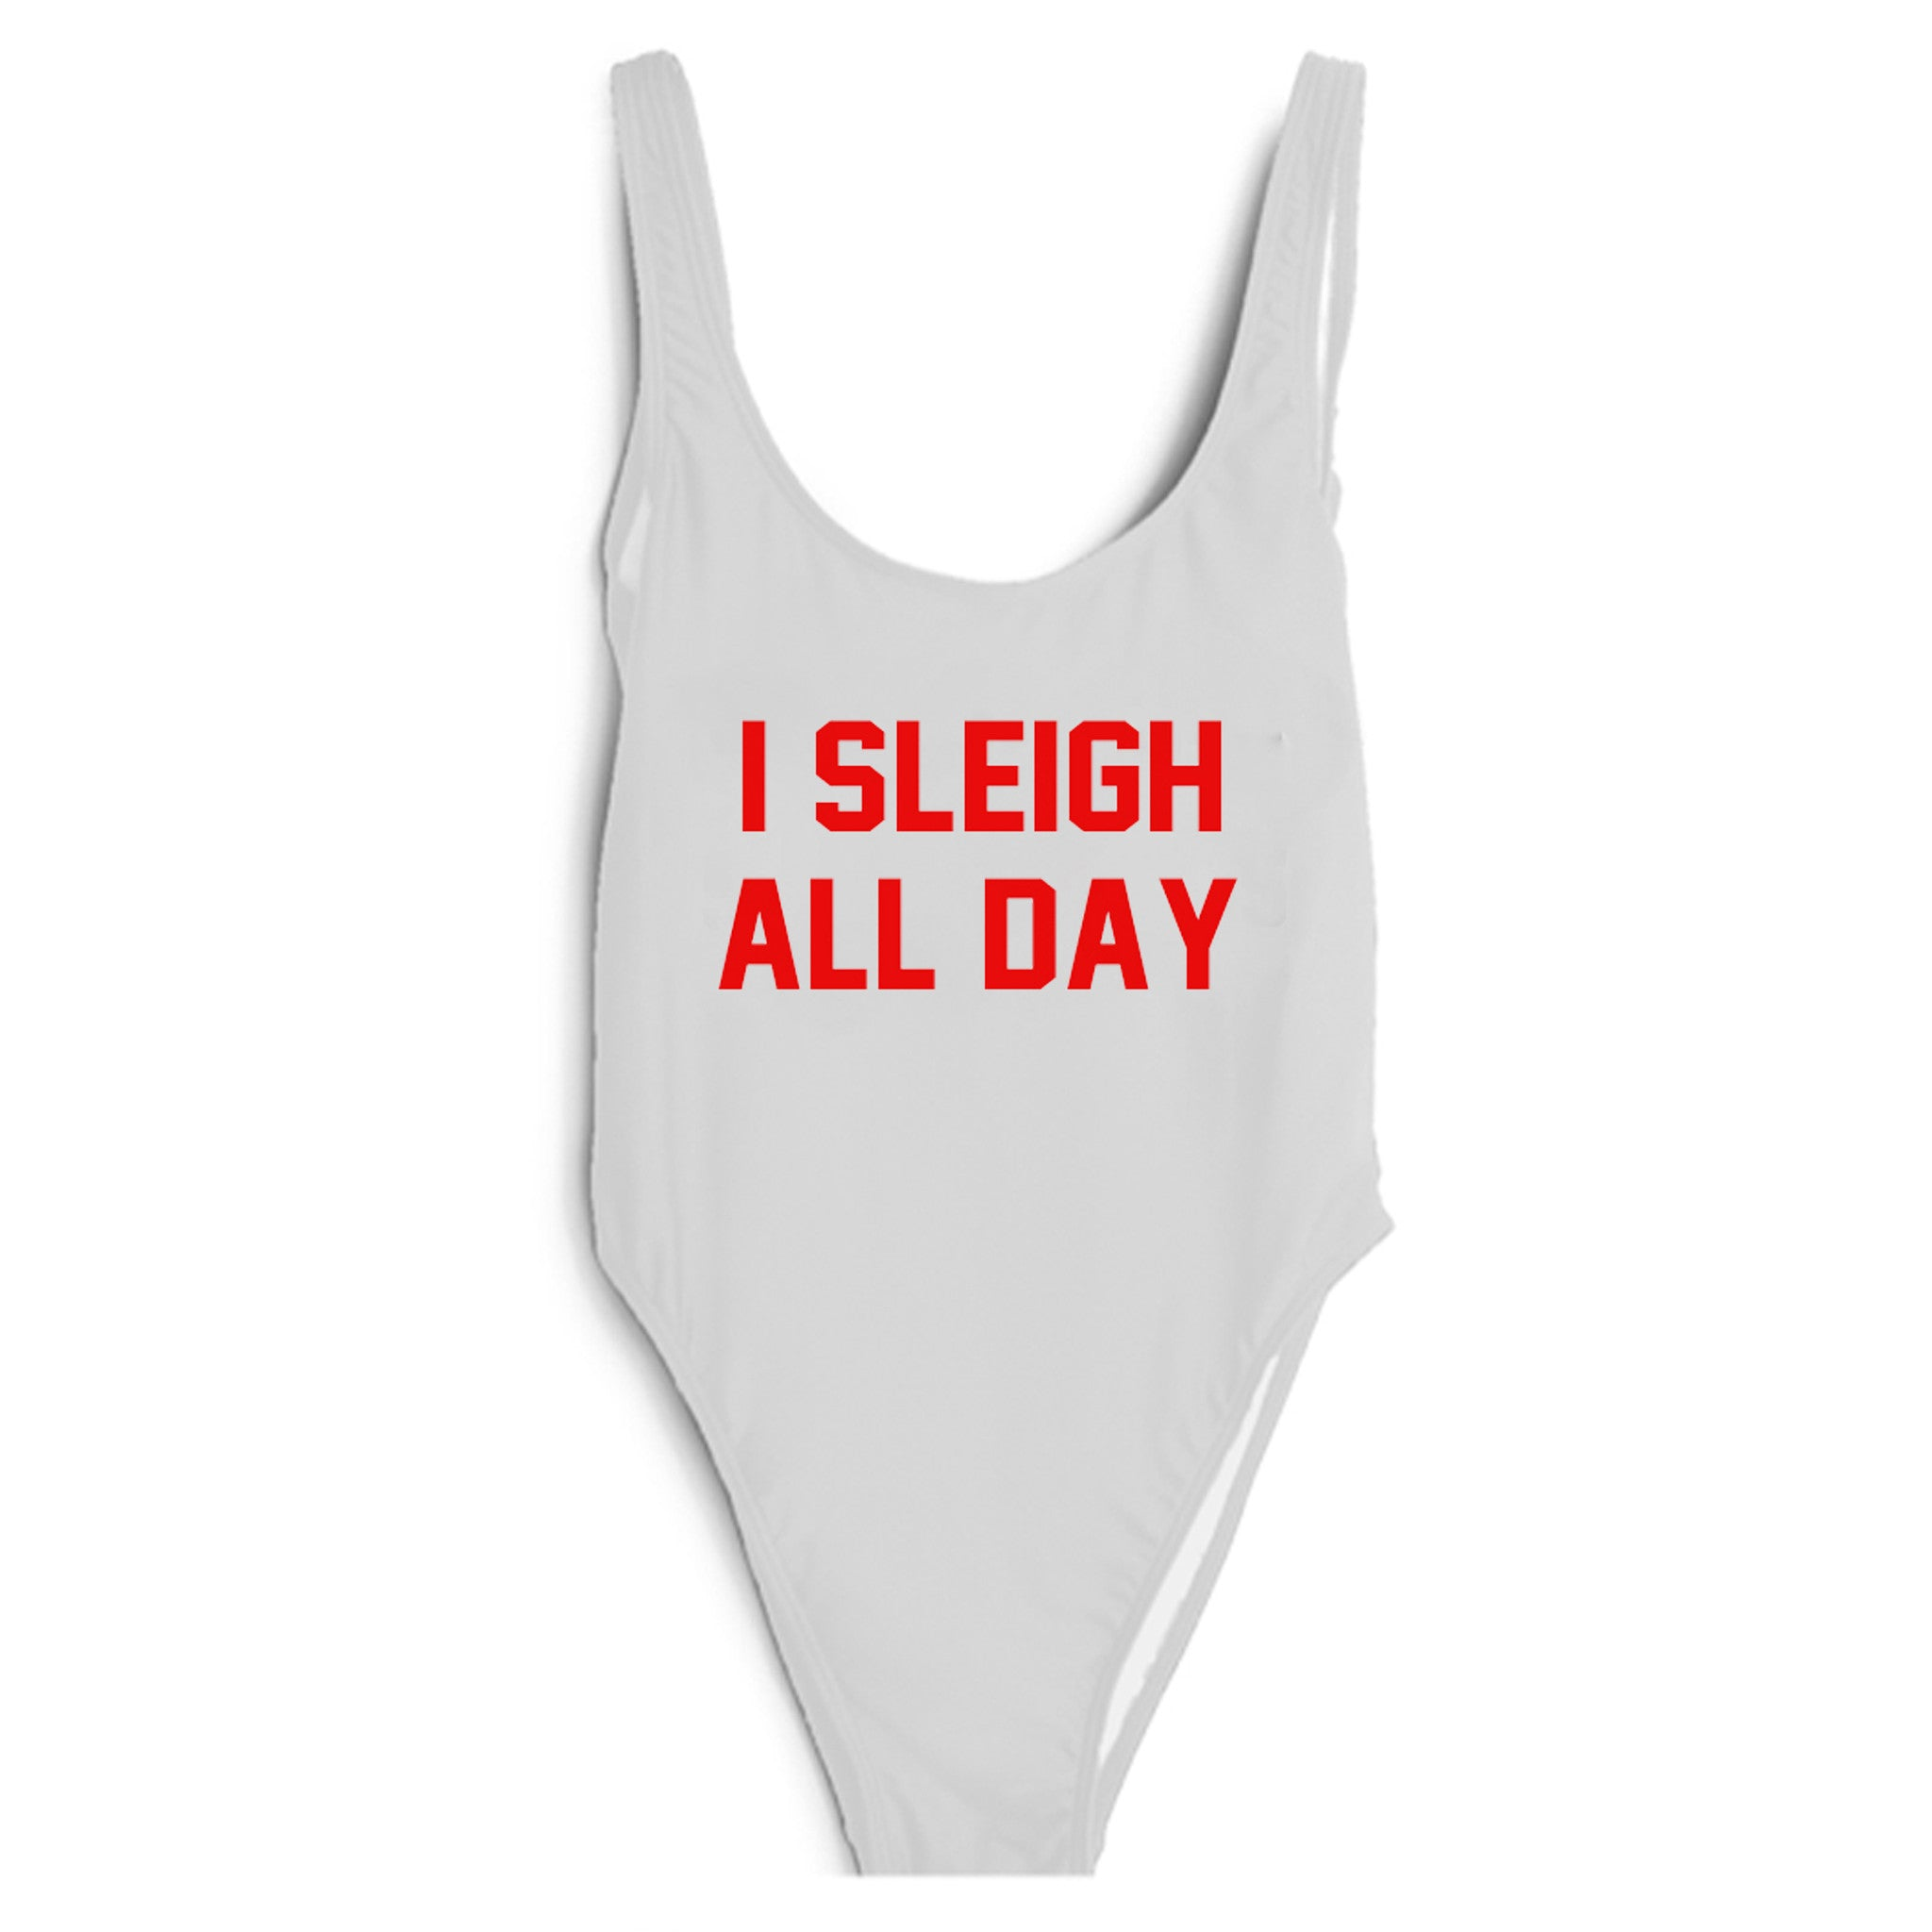 I SLEIGH ALL DAY [RED TEXT // SWIMSUIT]